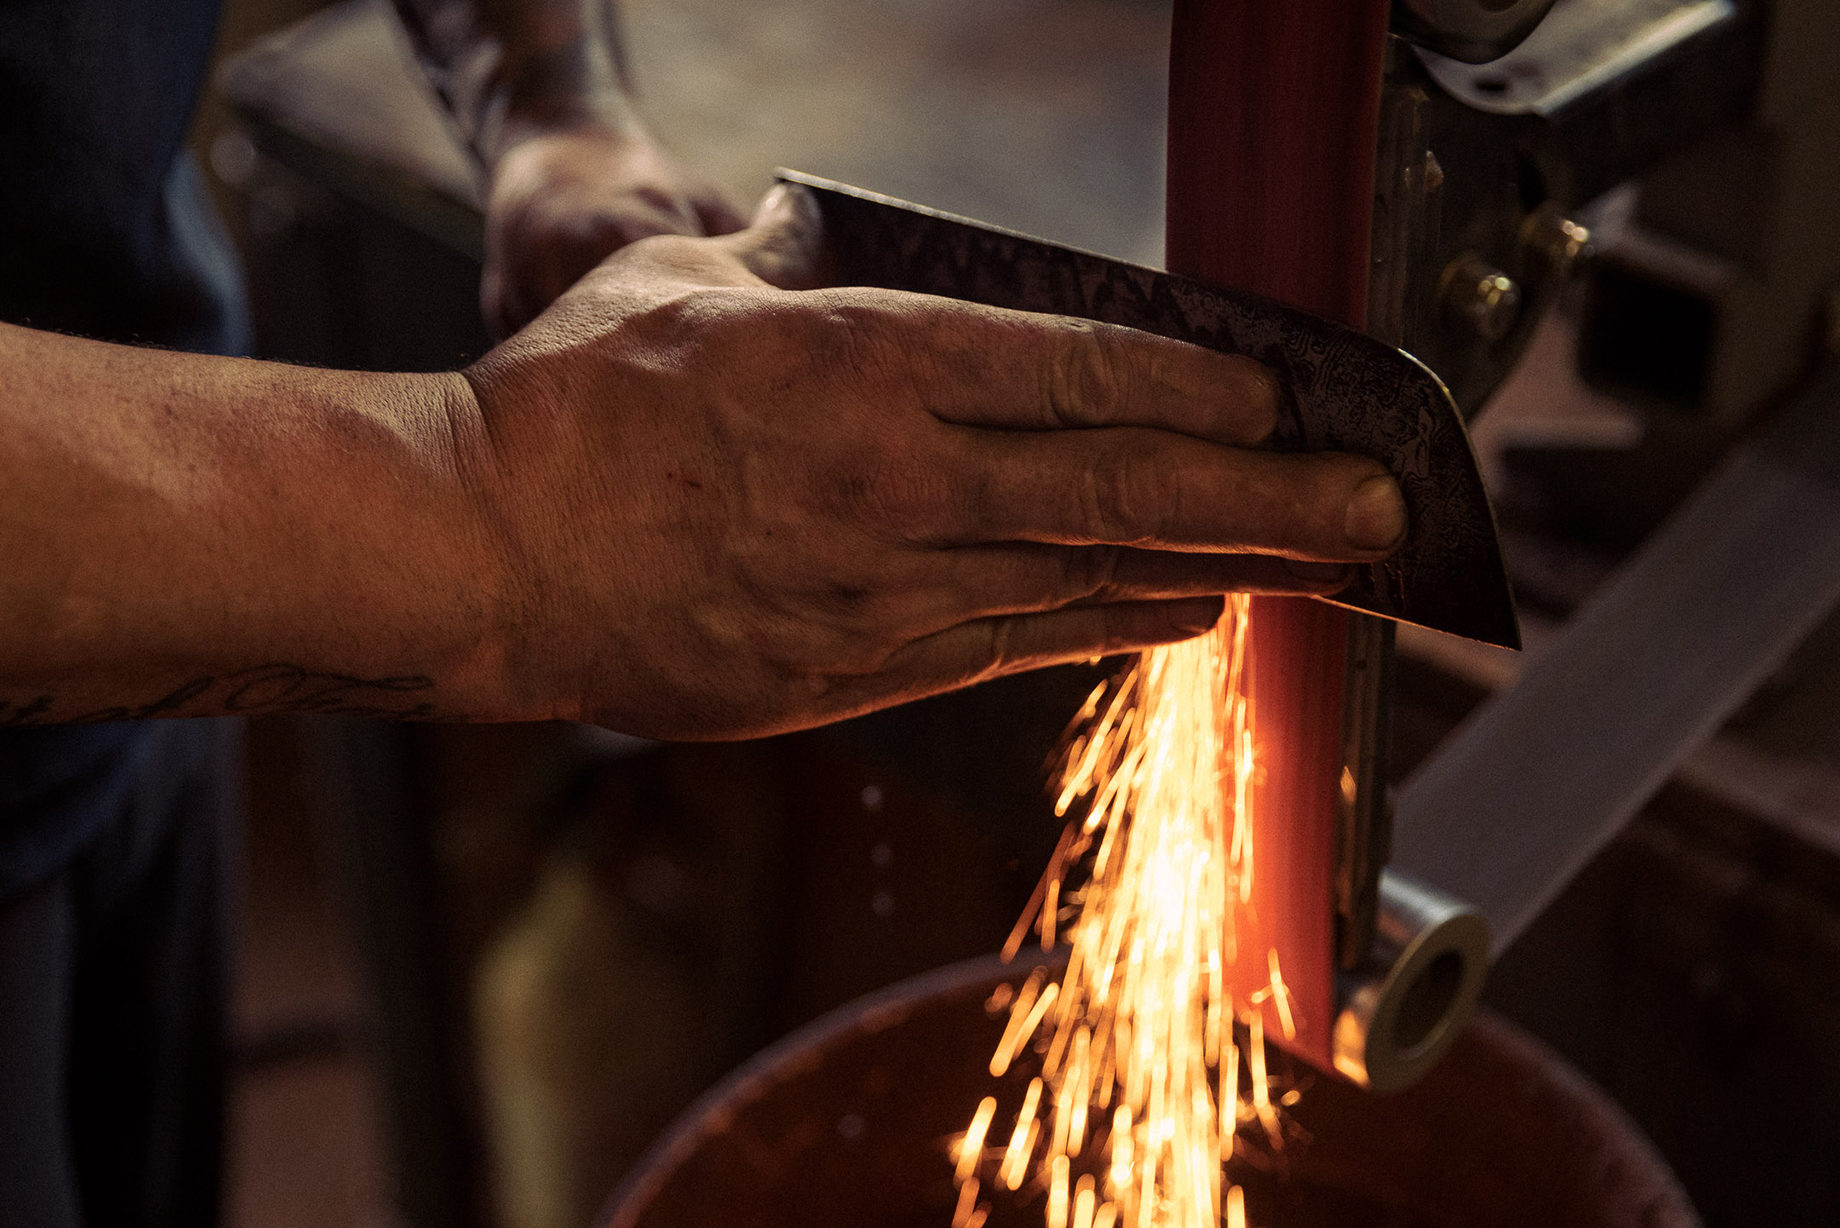 Sparks fly in metal workshop shot by Christian Tisdale for Makers series